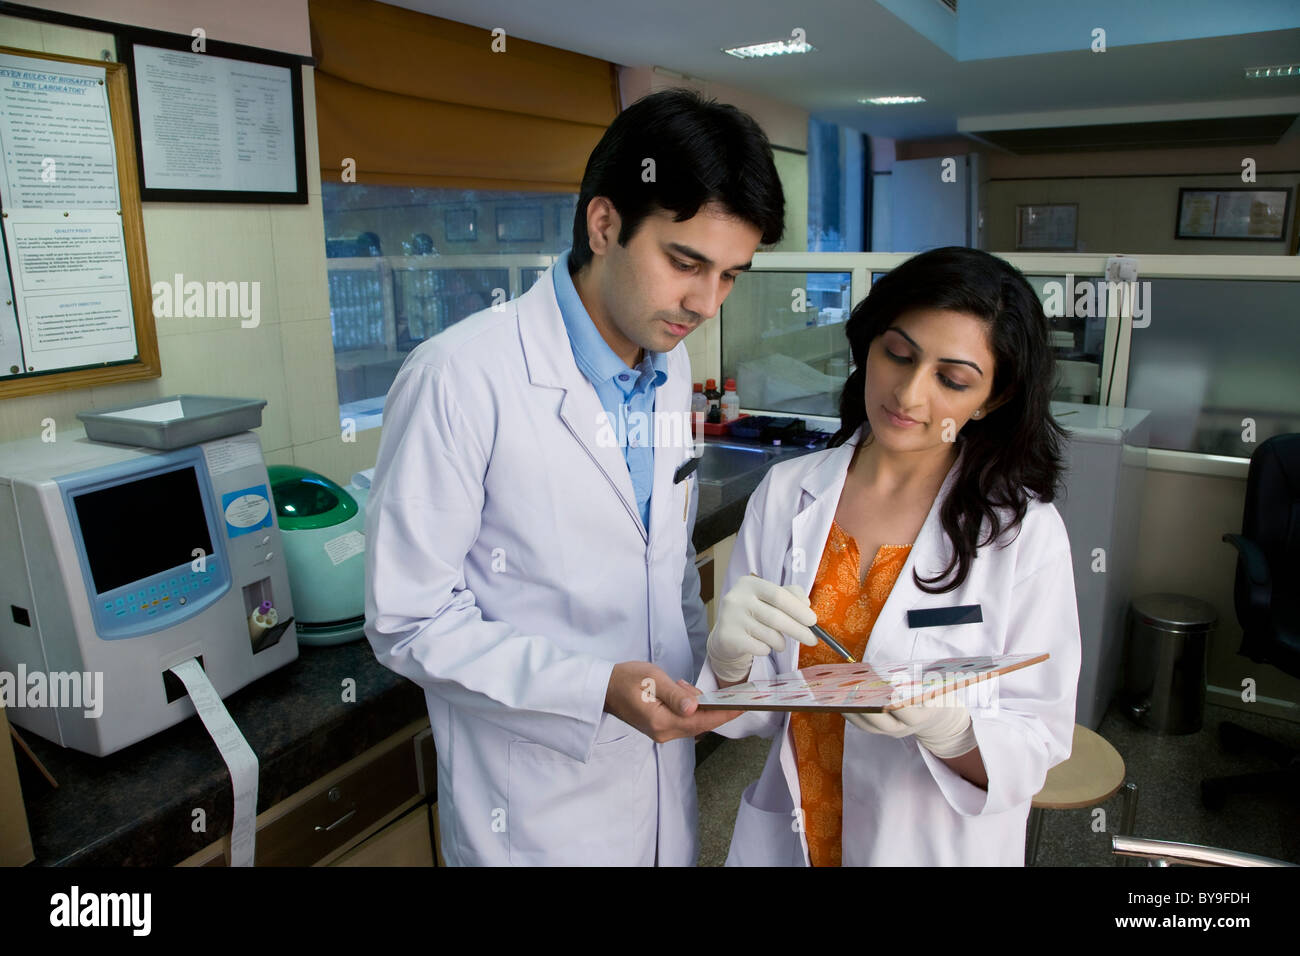 Doctors looking at a report - Stock Image